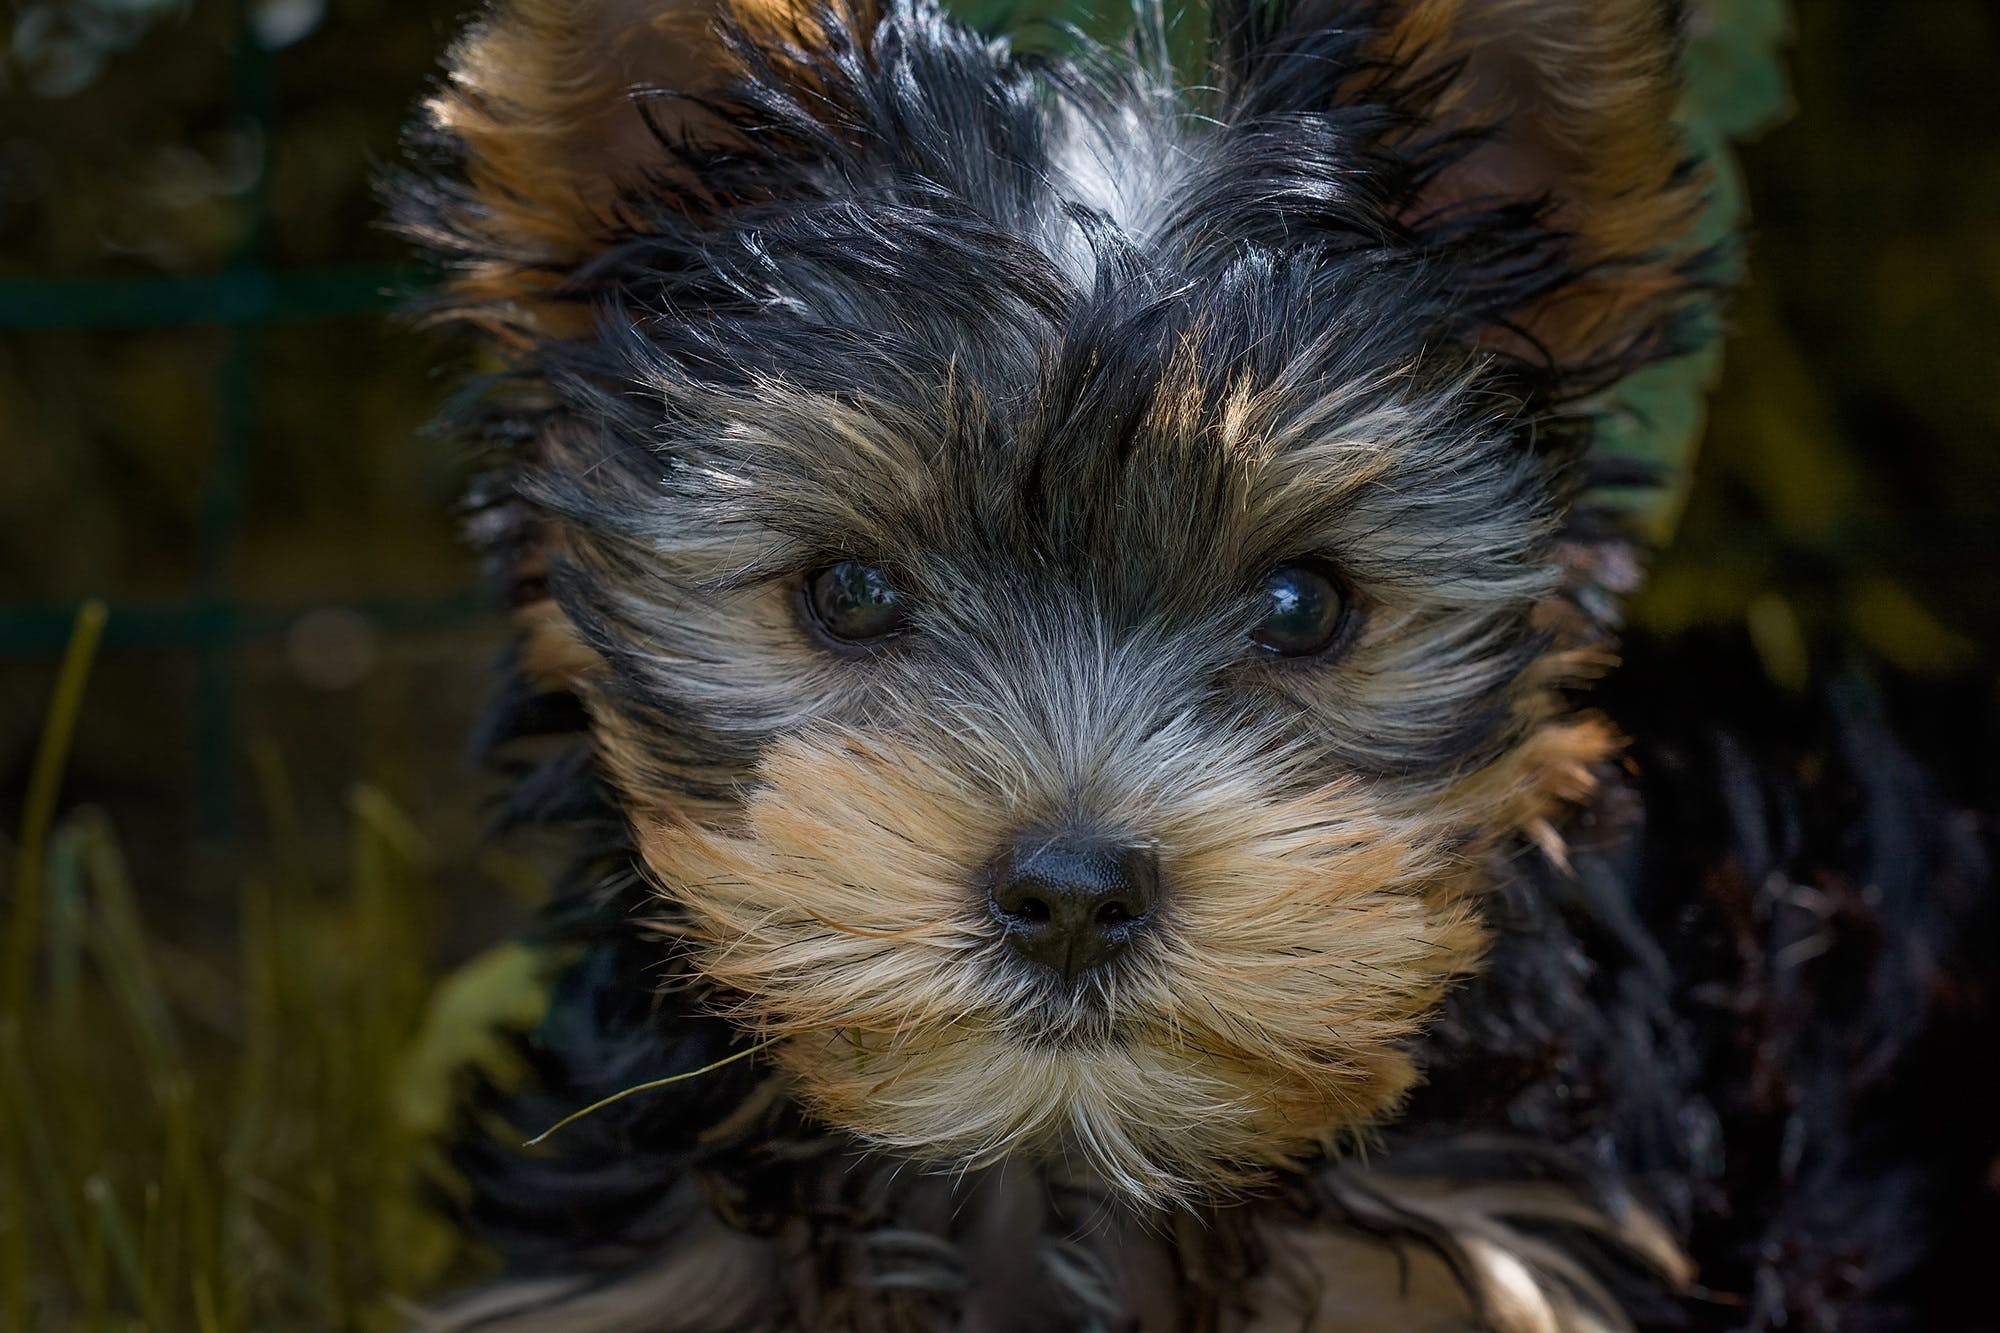 Black and Tan Yorkshire Terrier Puppy Closeup Photography